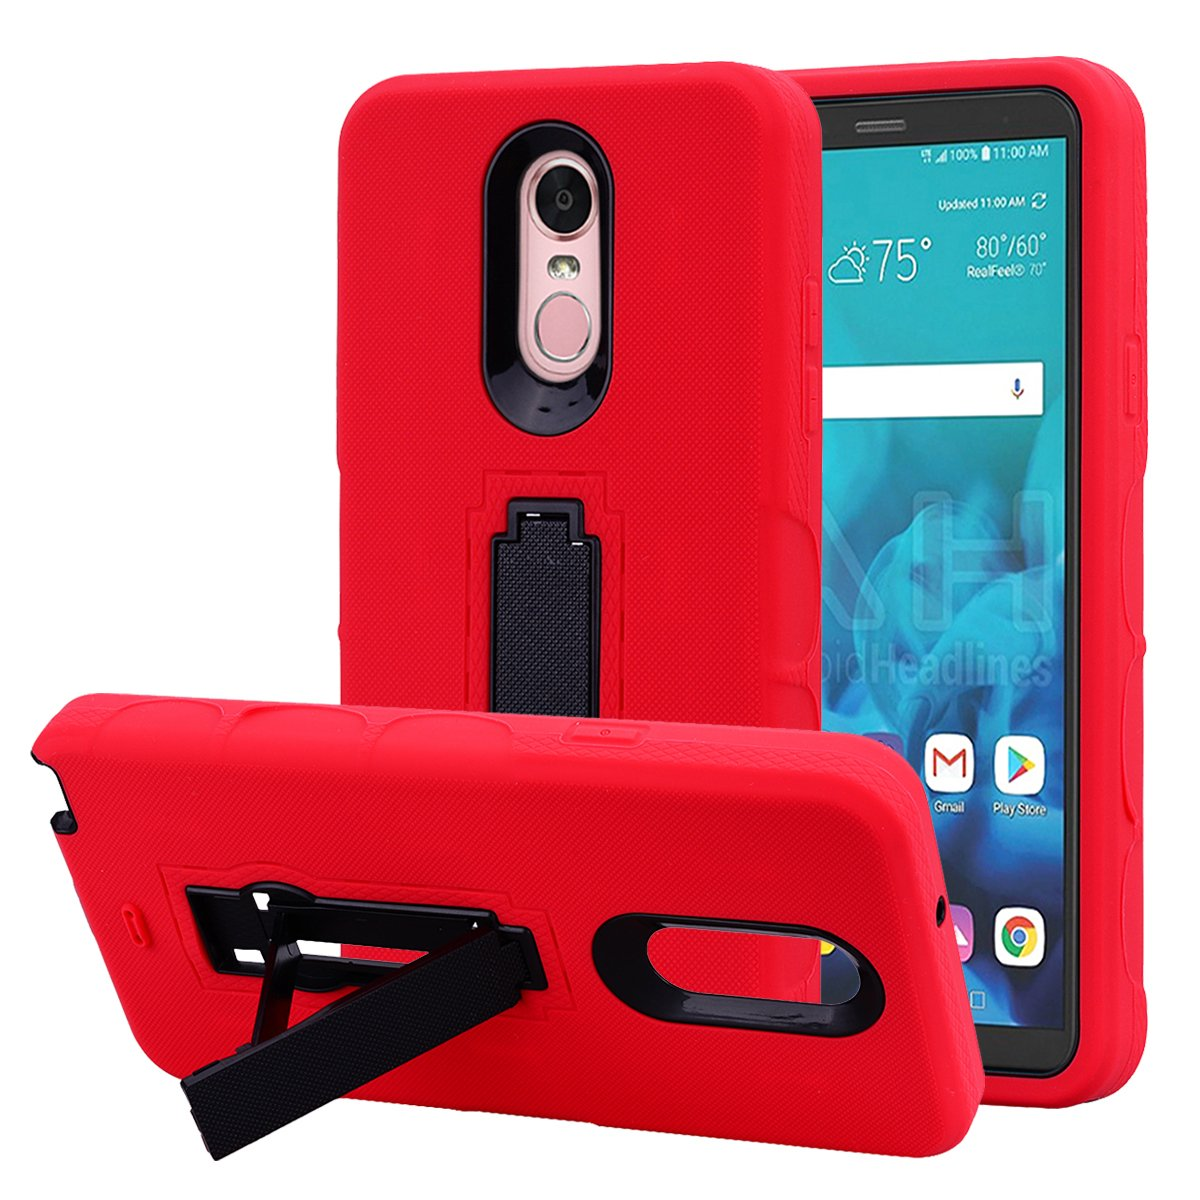 LG Stylo 4 Case, Binguowang Hybrid Heavy Duty Shockproof 3 in 1 design[Hard Plastic+Soft Silicone] Armor Defender Full-body Protective Case Cover with Kickstand for LG Stylo 4 2018. (Red/Black)